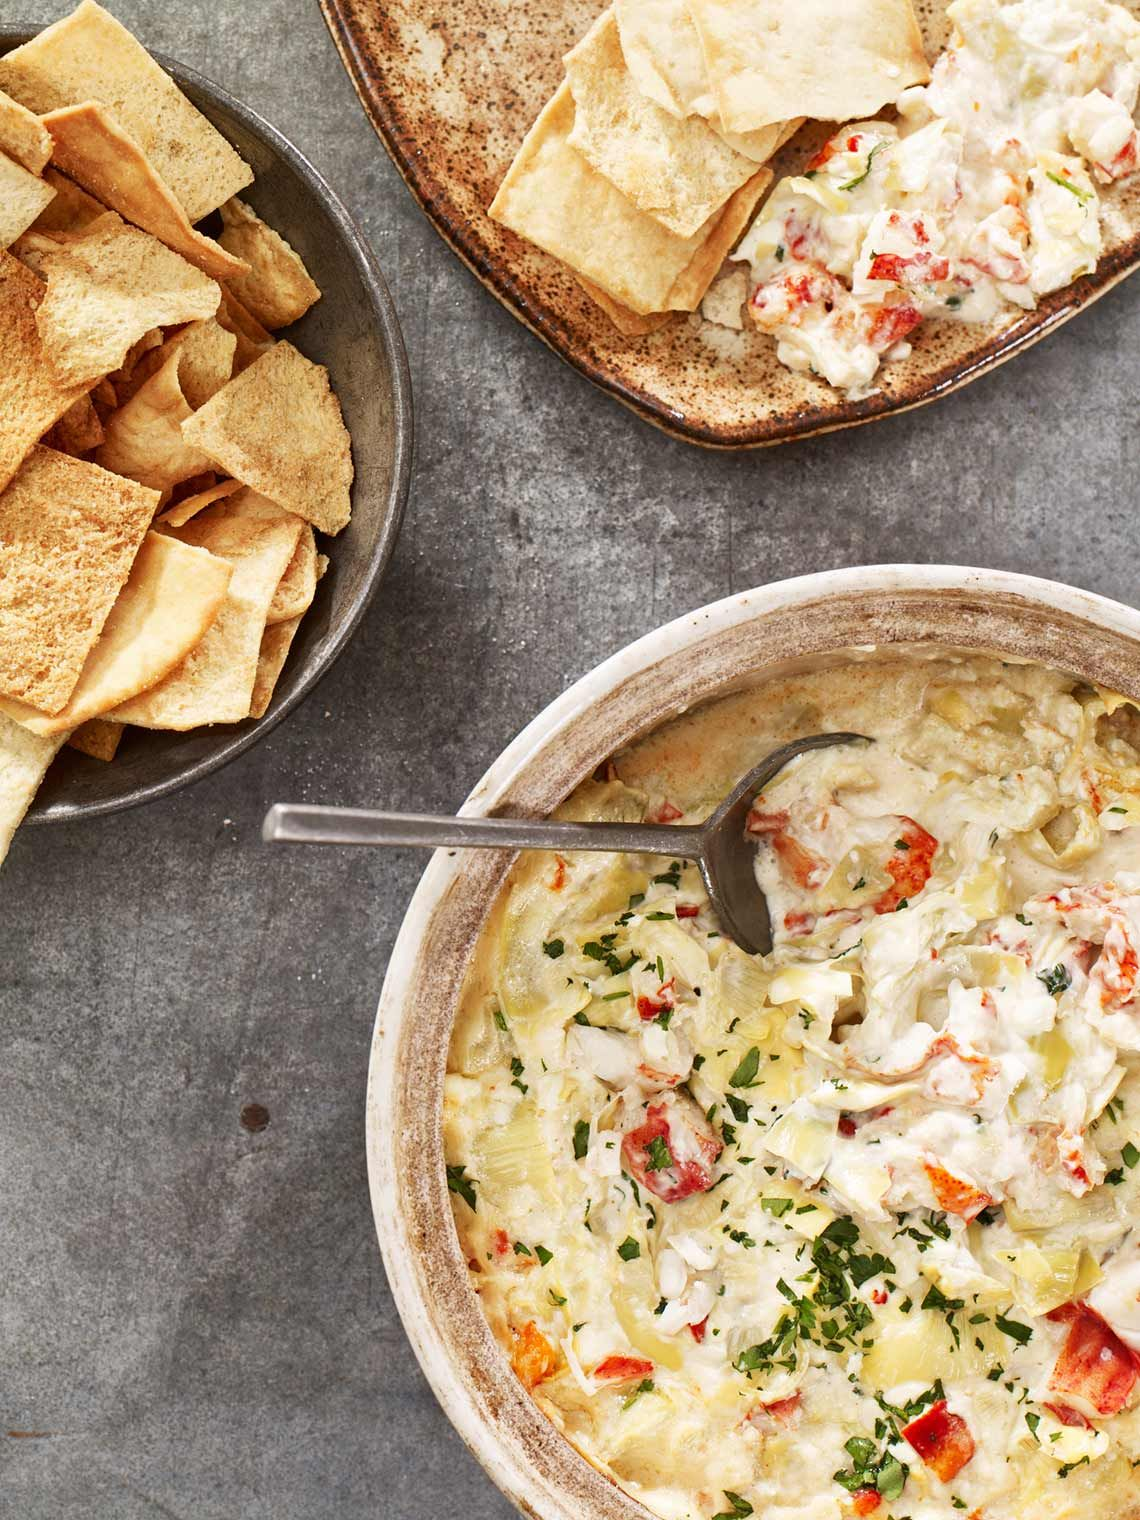 Your Favorite Party Dip Just Got A Maine Lobster Upgrade